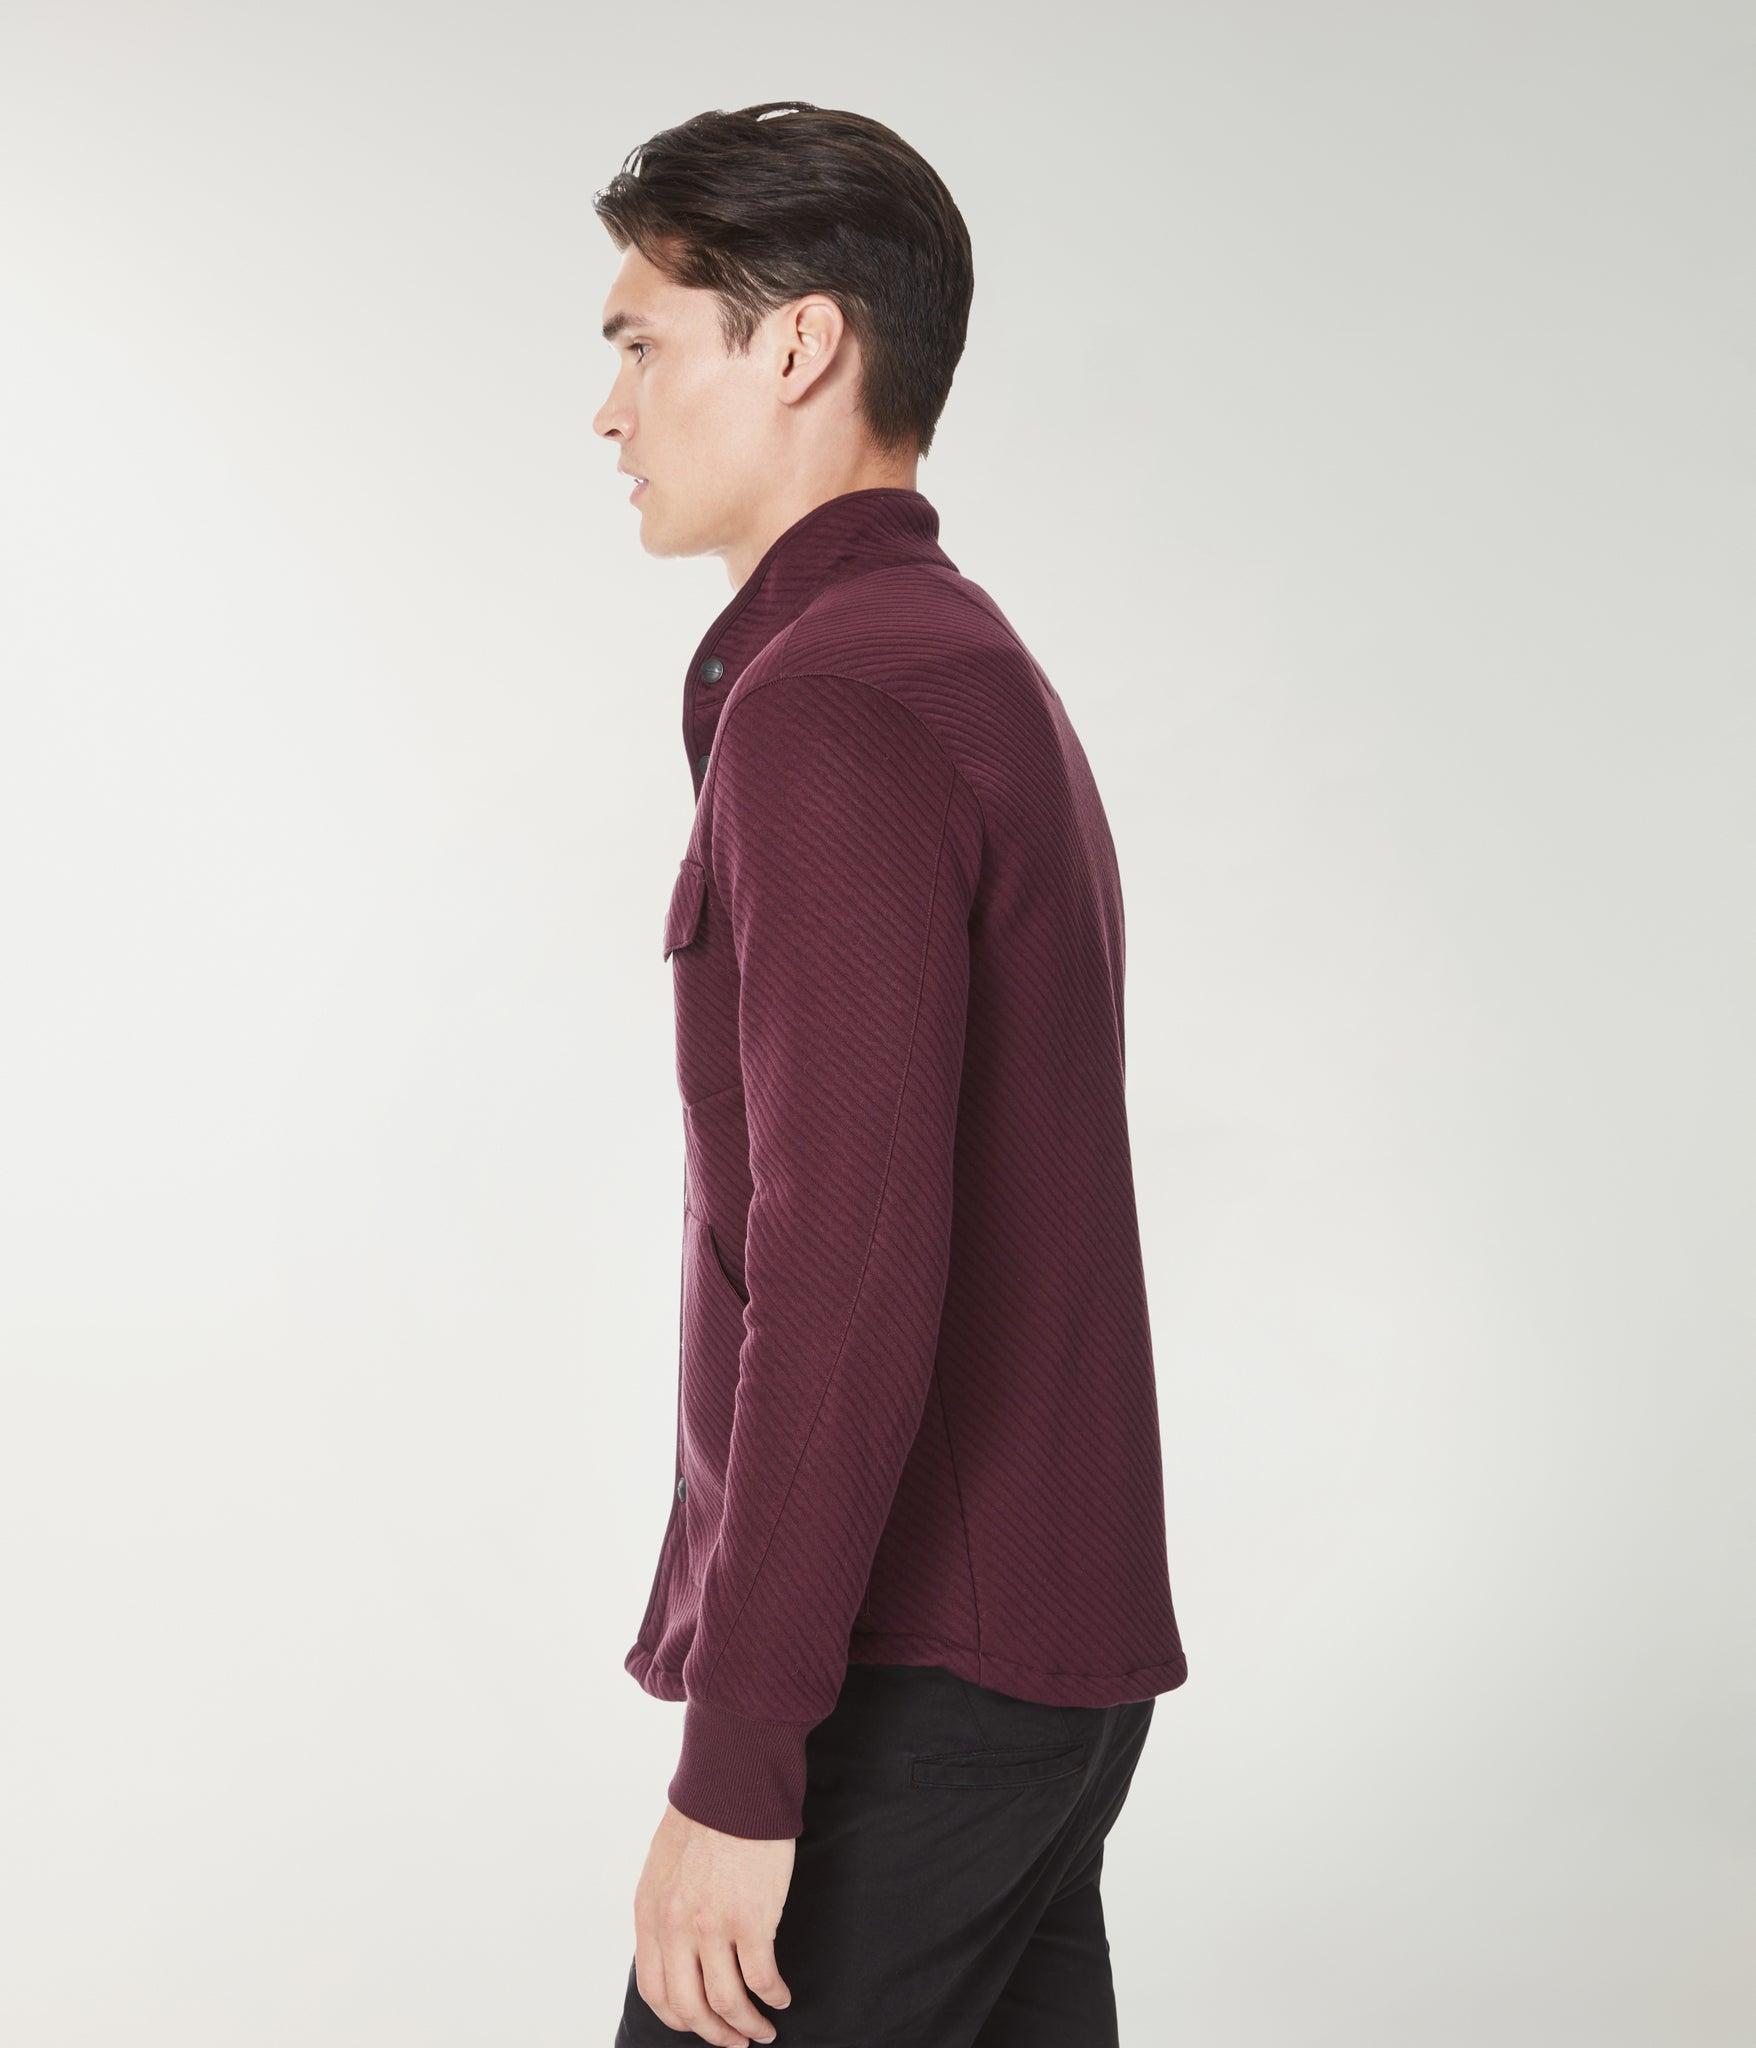 Fuji Shirt Jacket in Twill Quilt Jacquard - Wine